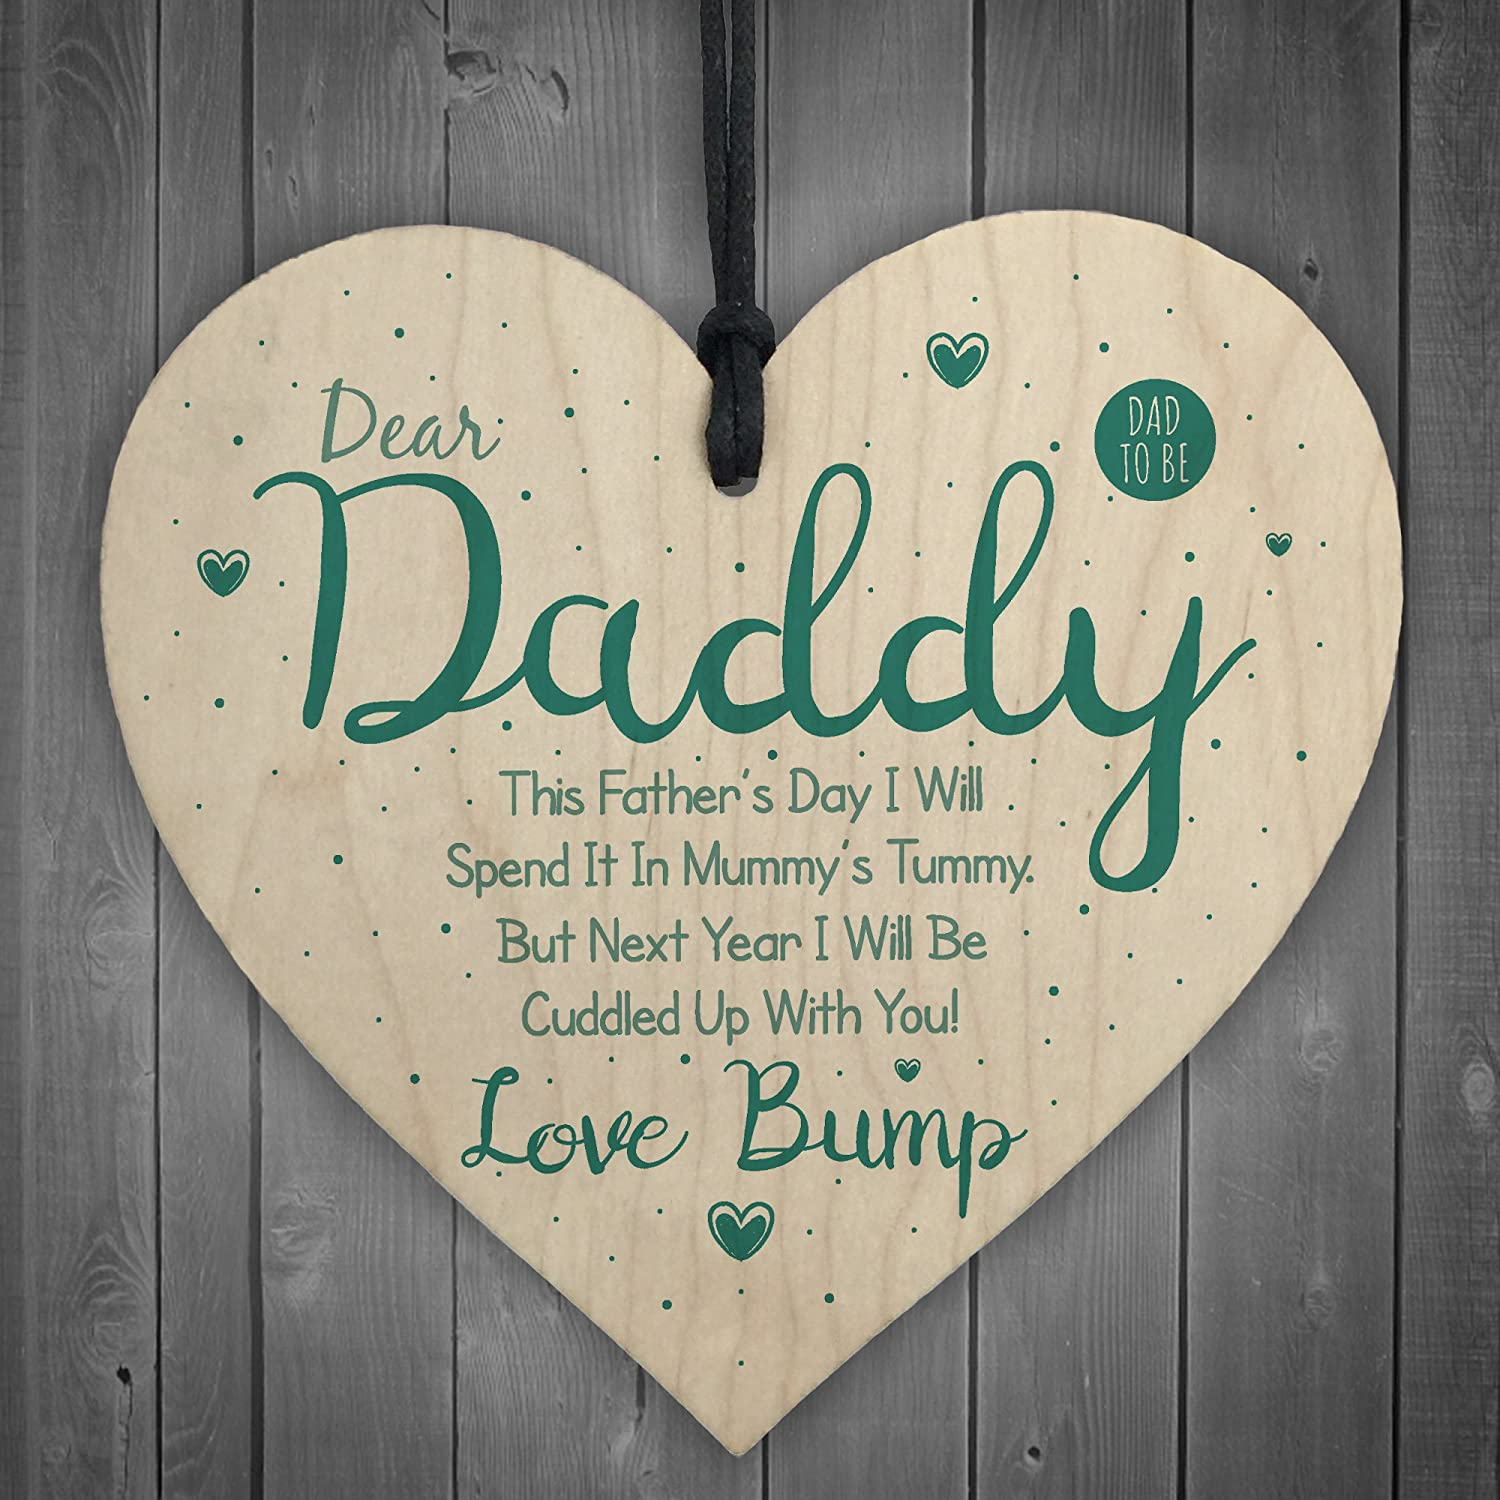 Fathers Day Gift From Daughter Novelty Wooden Heart Sign Gifts For DAD Him